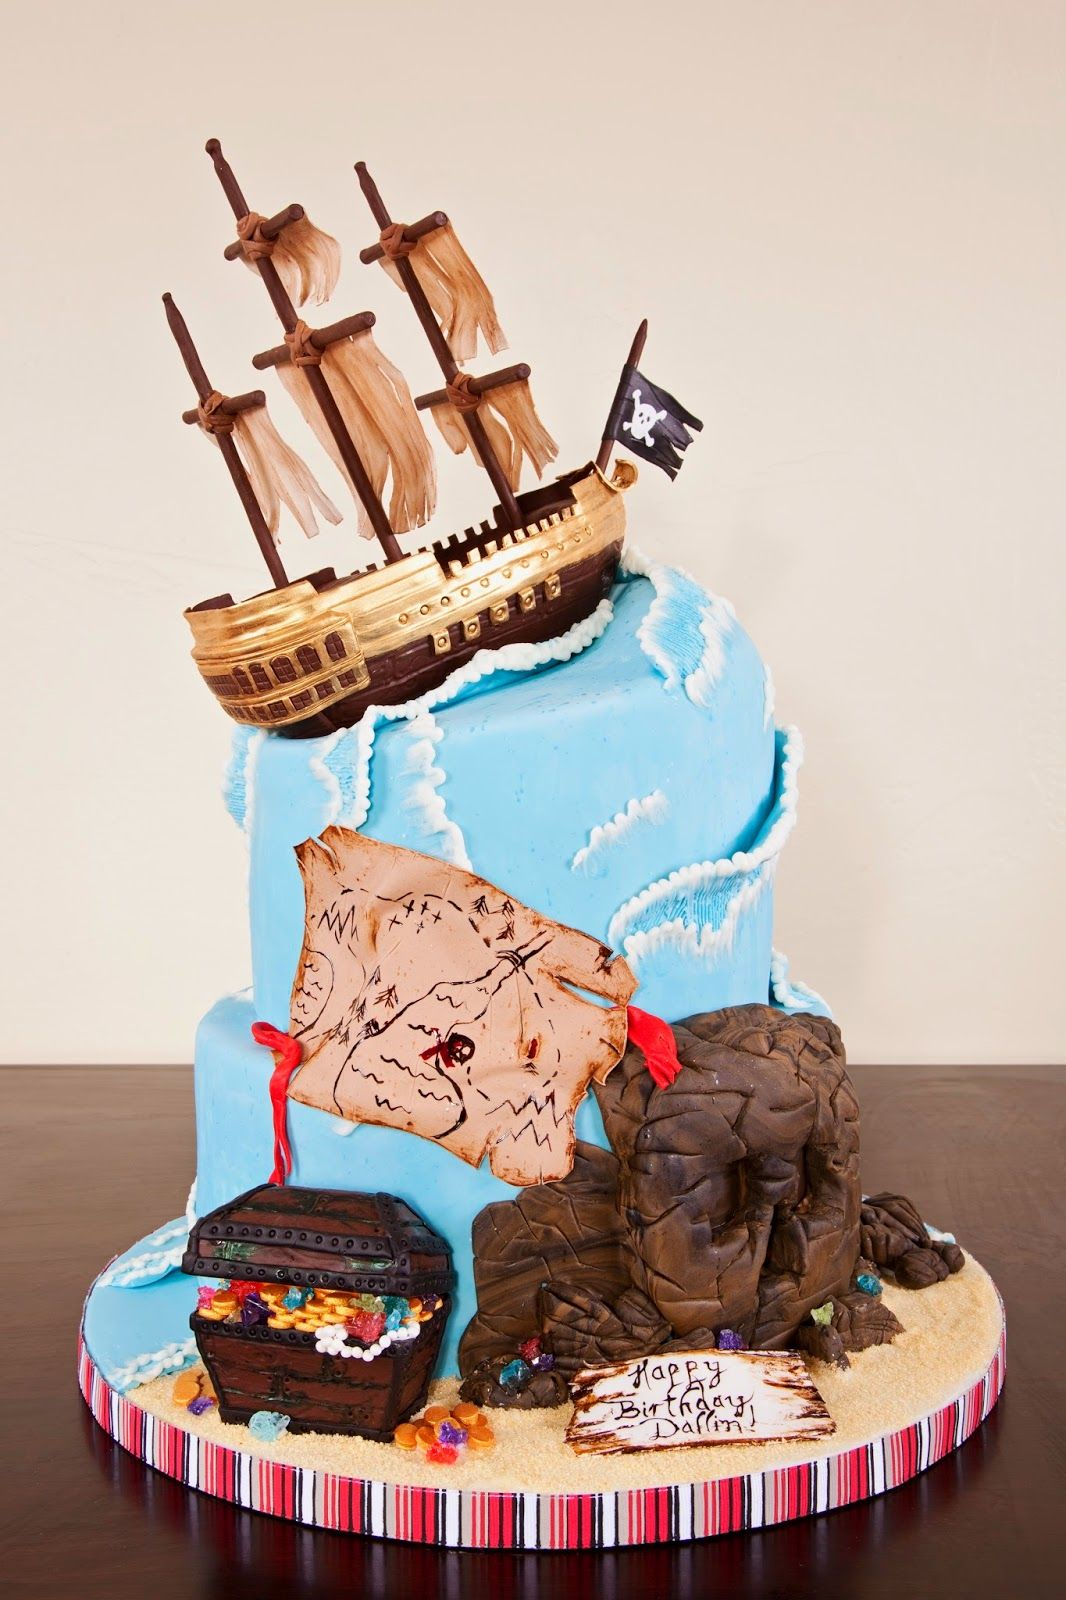 Delectable Cakes Stormy Ocean Pirate Ship Birthday Cake cakes